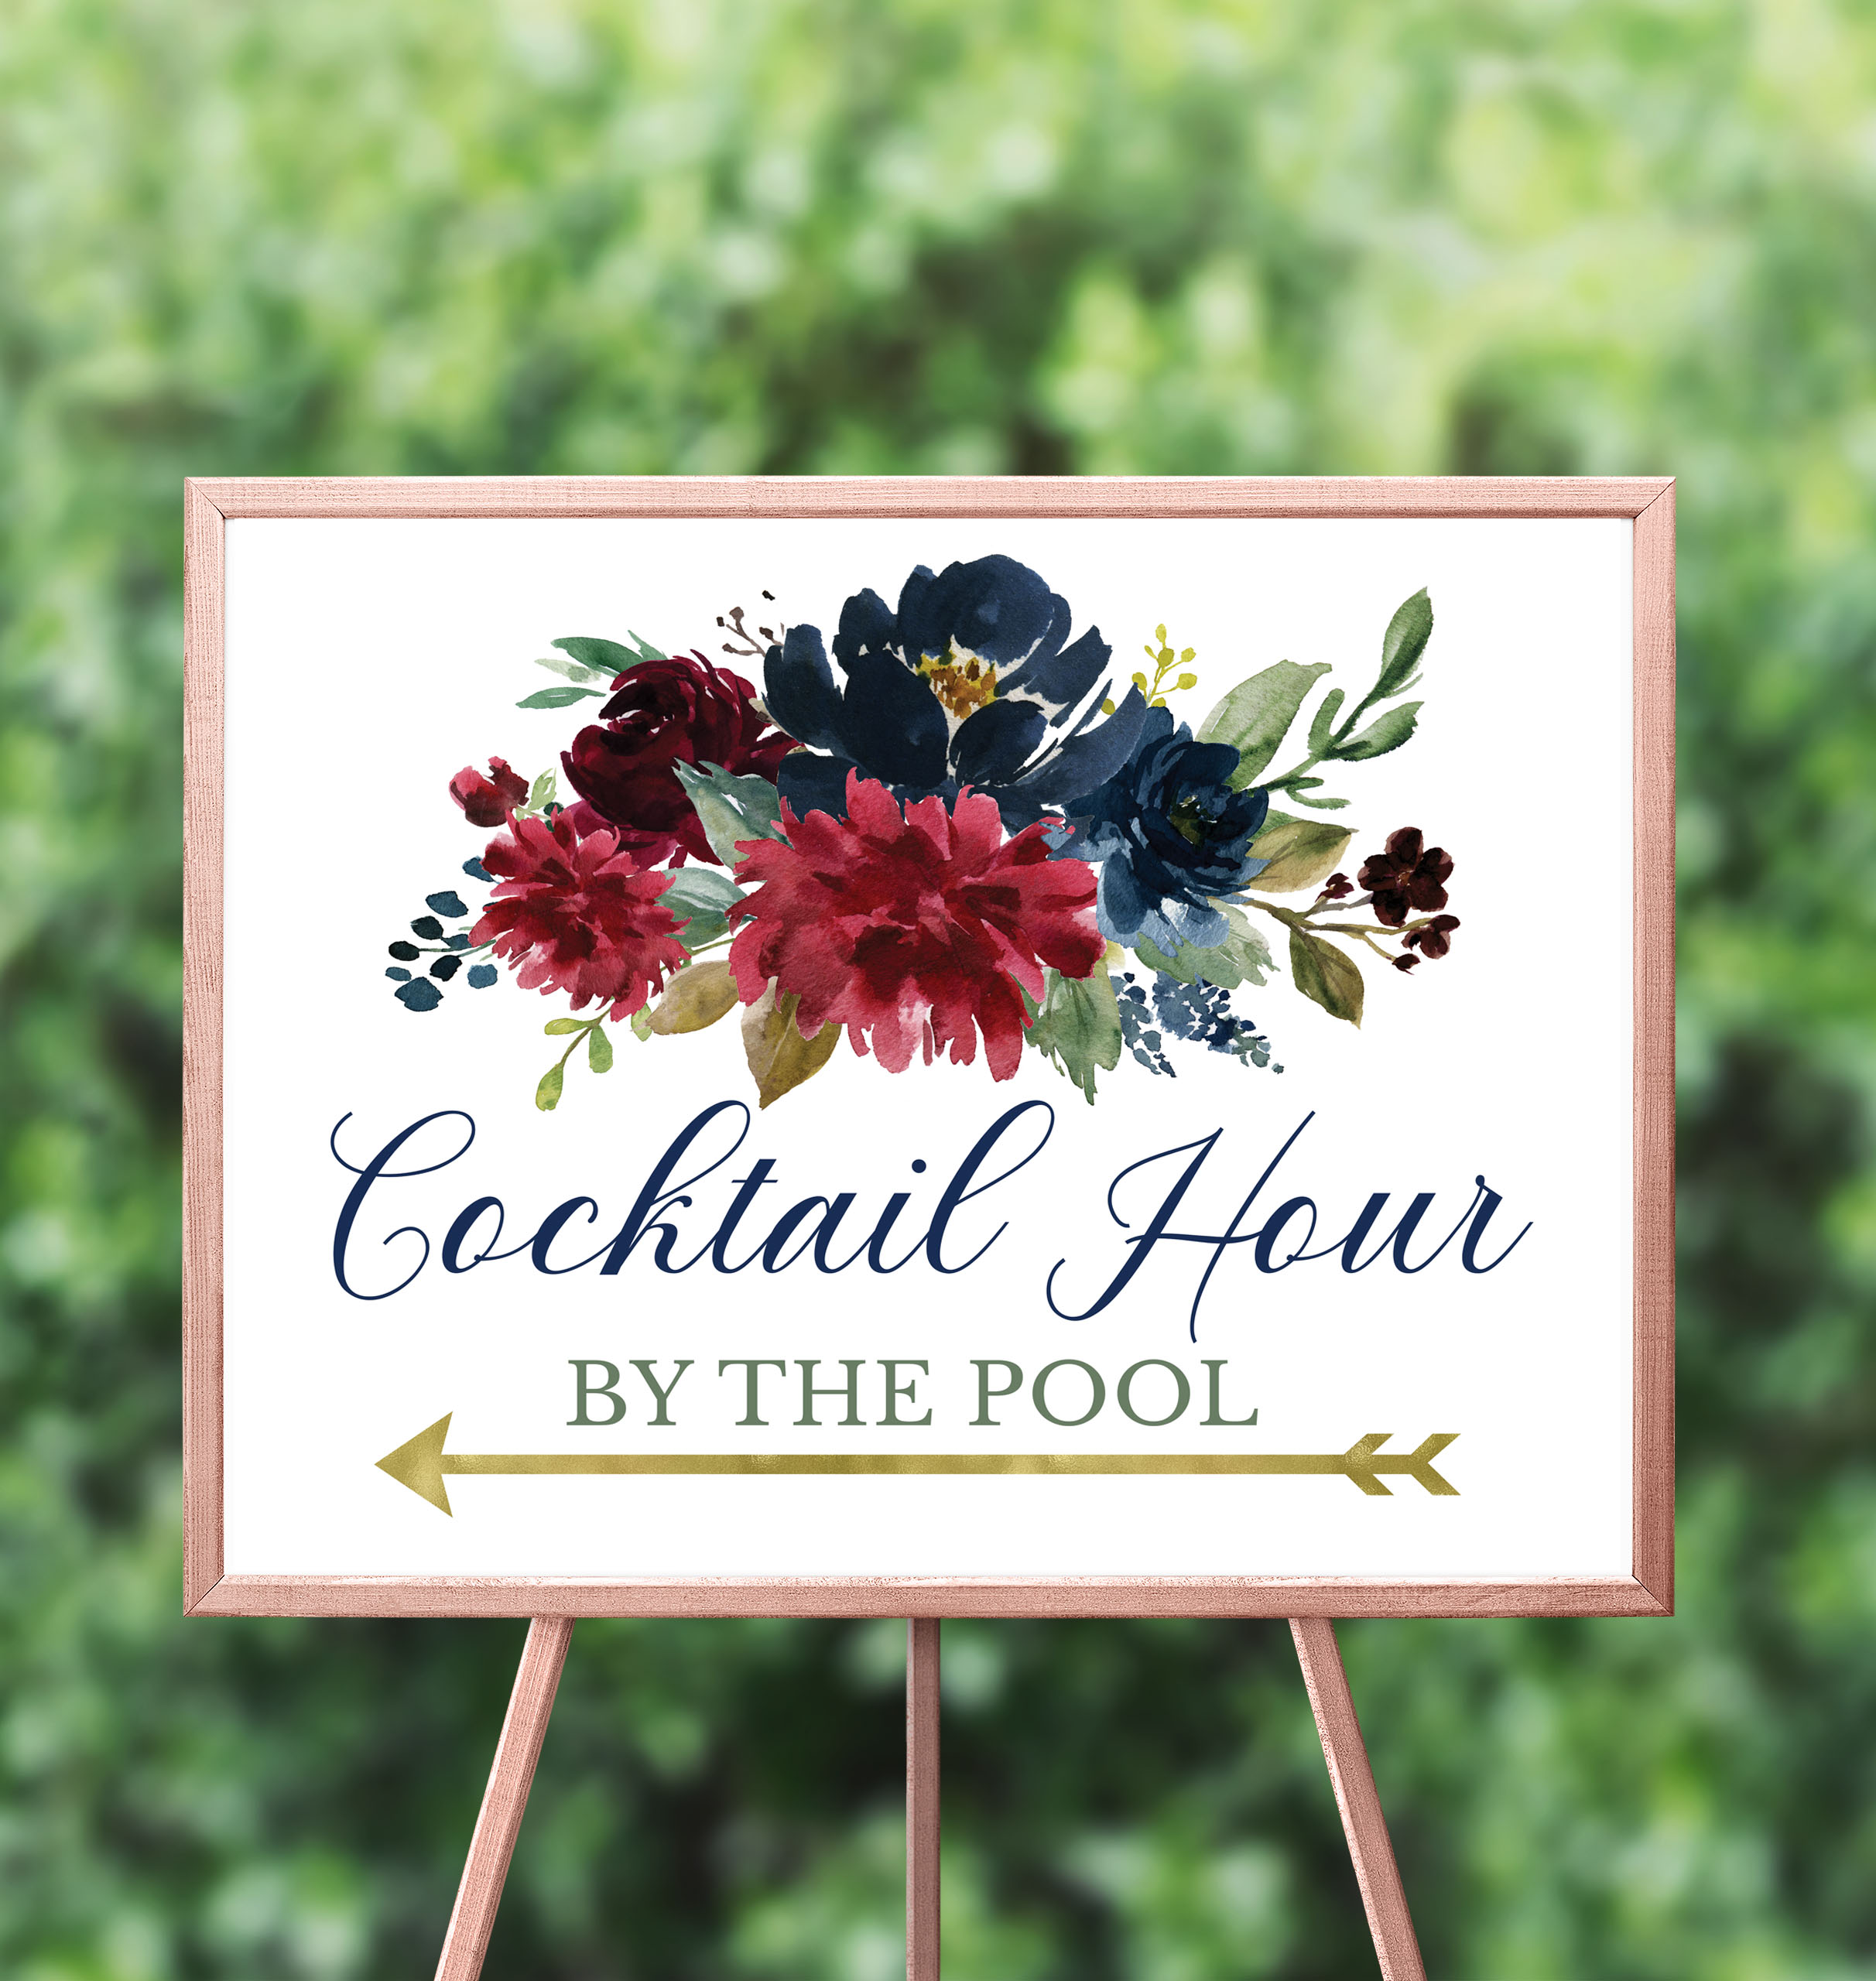 NAVY & BURGUNDY FLORAL COCKTAIL HOUR SIGN.jpg